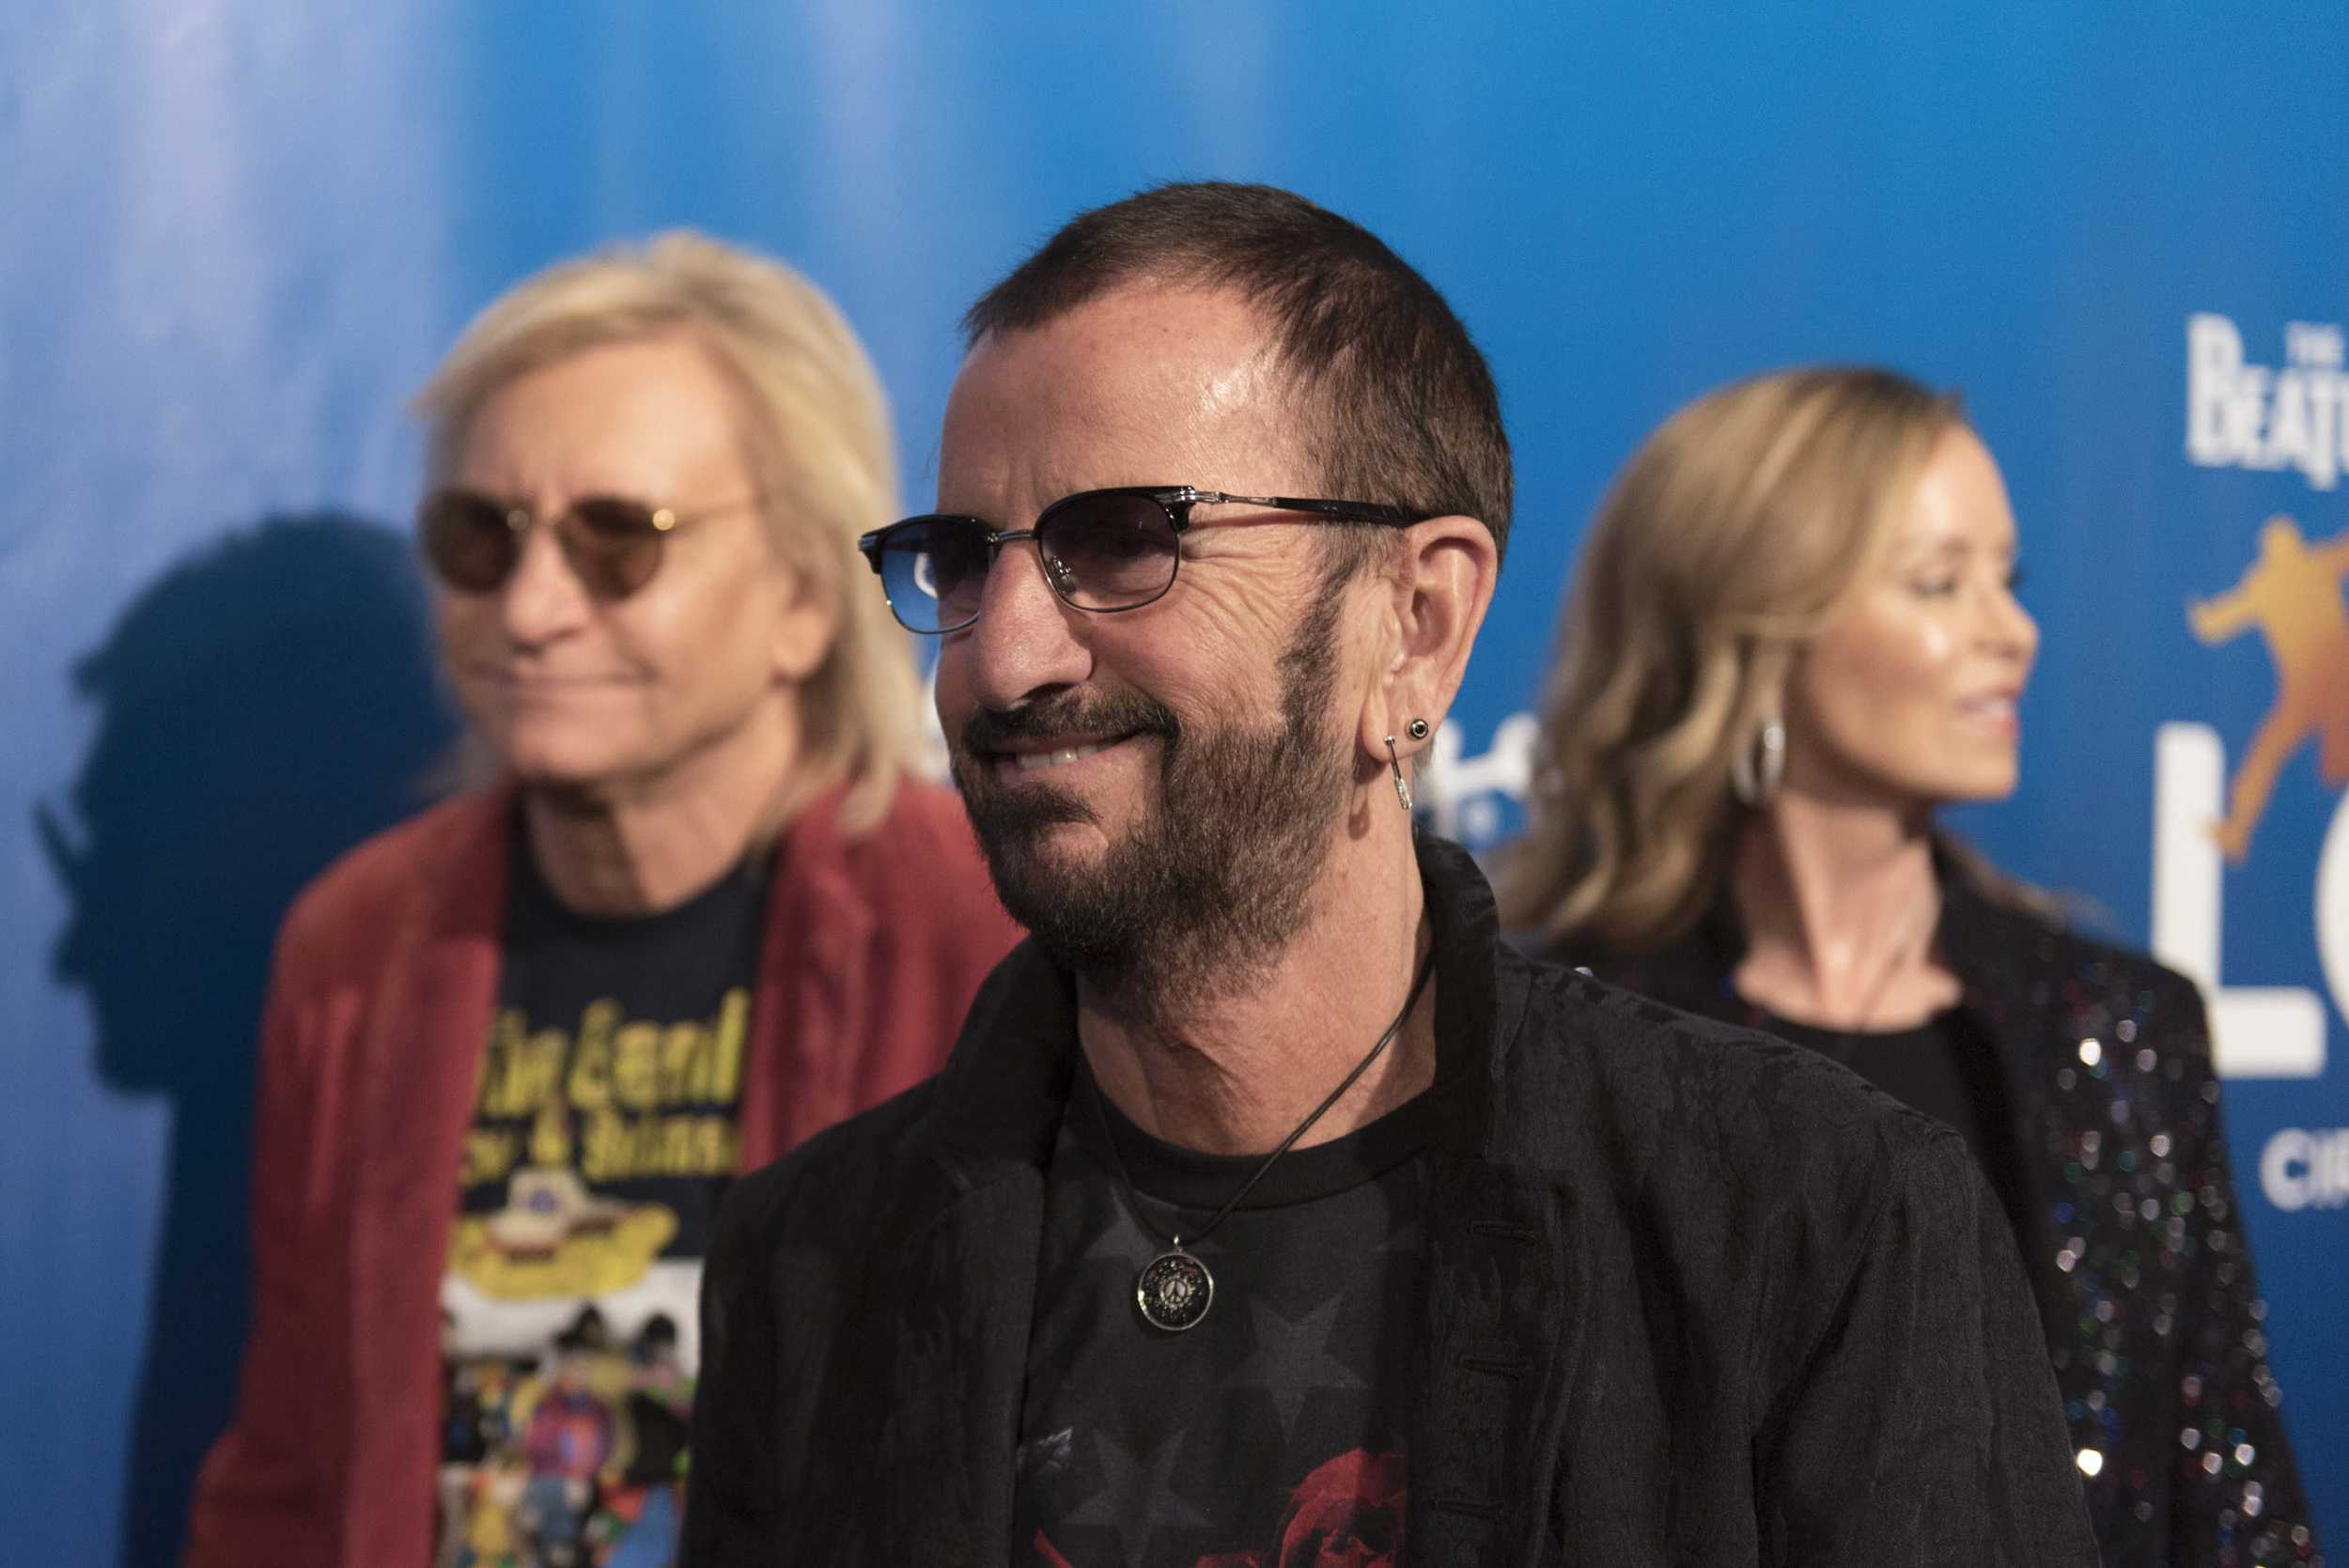 Drummer for the Beatles Ringo Starr, center, poses during a red carpet event to celebrate the 10th anniversary of Cirque du Soleil's The Beatles LOVE at The Mirage hotel-casino in Las Vegas Thursday, July 14, 2016. Joe Walsh of Ringo Starr & His All-Starr Band, left, and Walsh's wife, Marjorie Bach, look on. Jason Ogulnik/Las Vegas Review-Journal